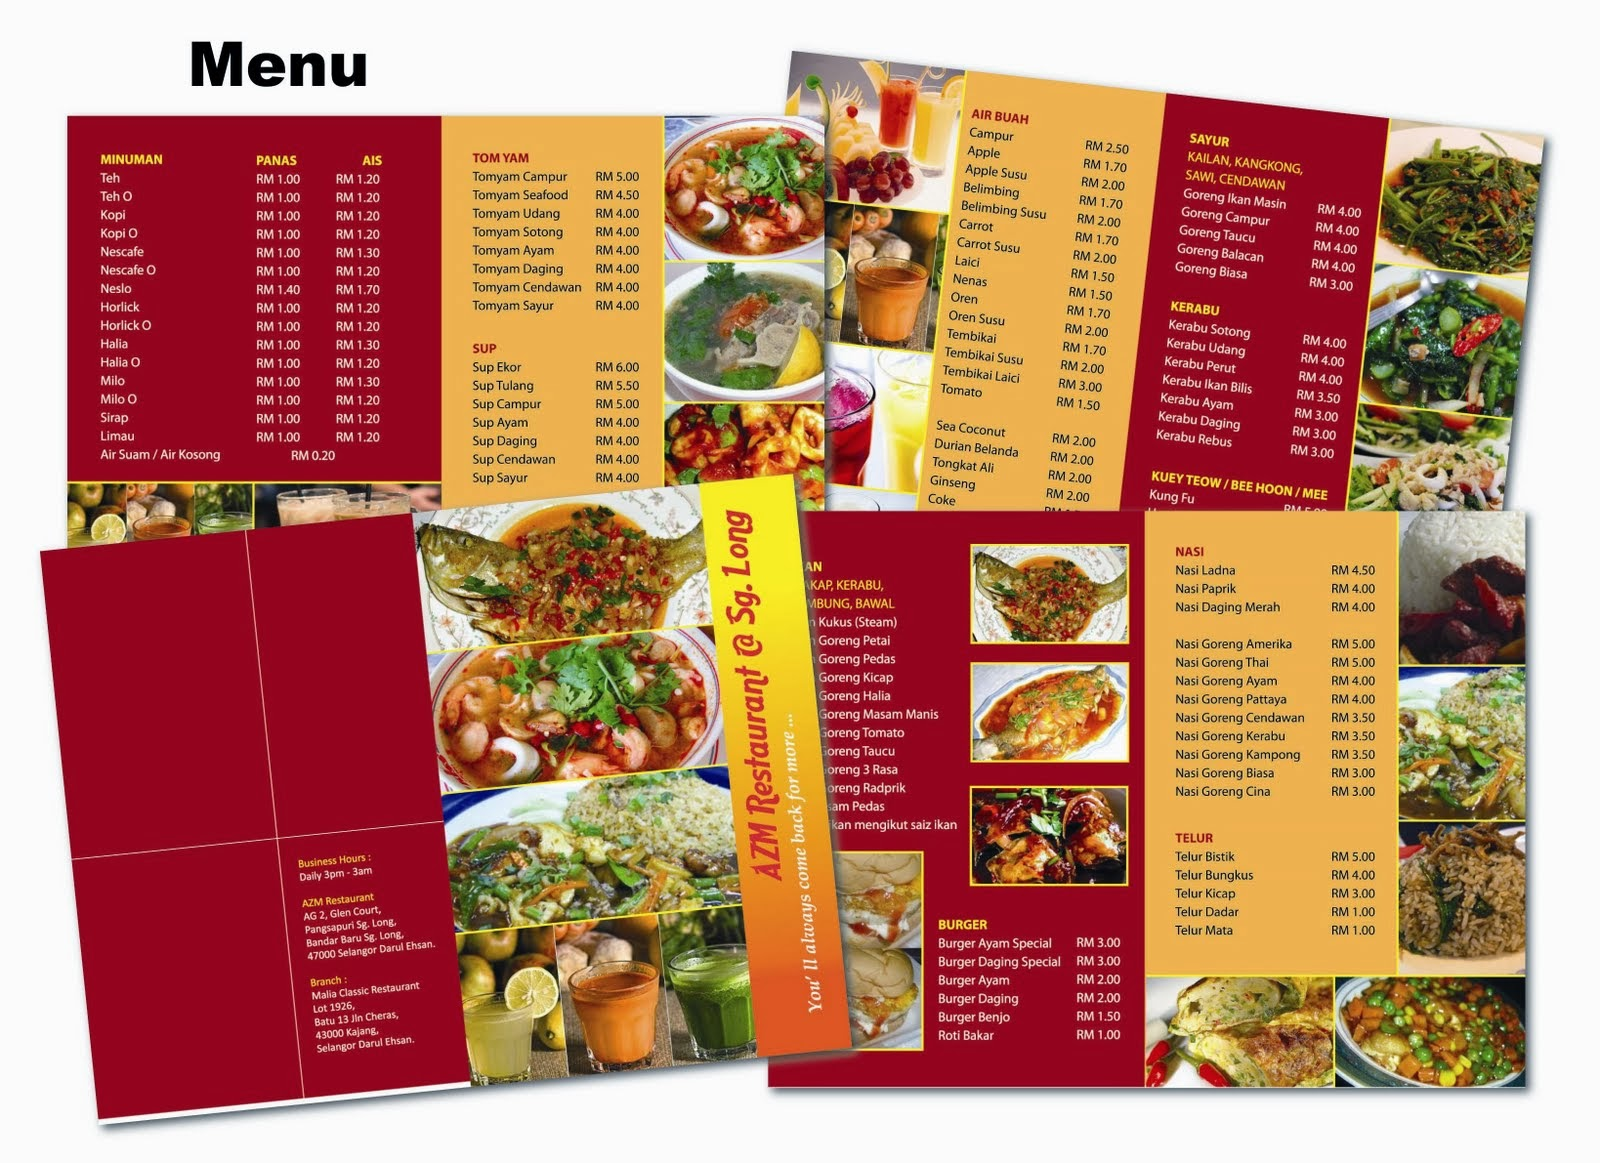 cafe menu design template free download - beautiful restaurant menu designs inspiration design